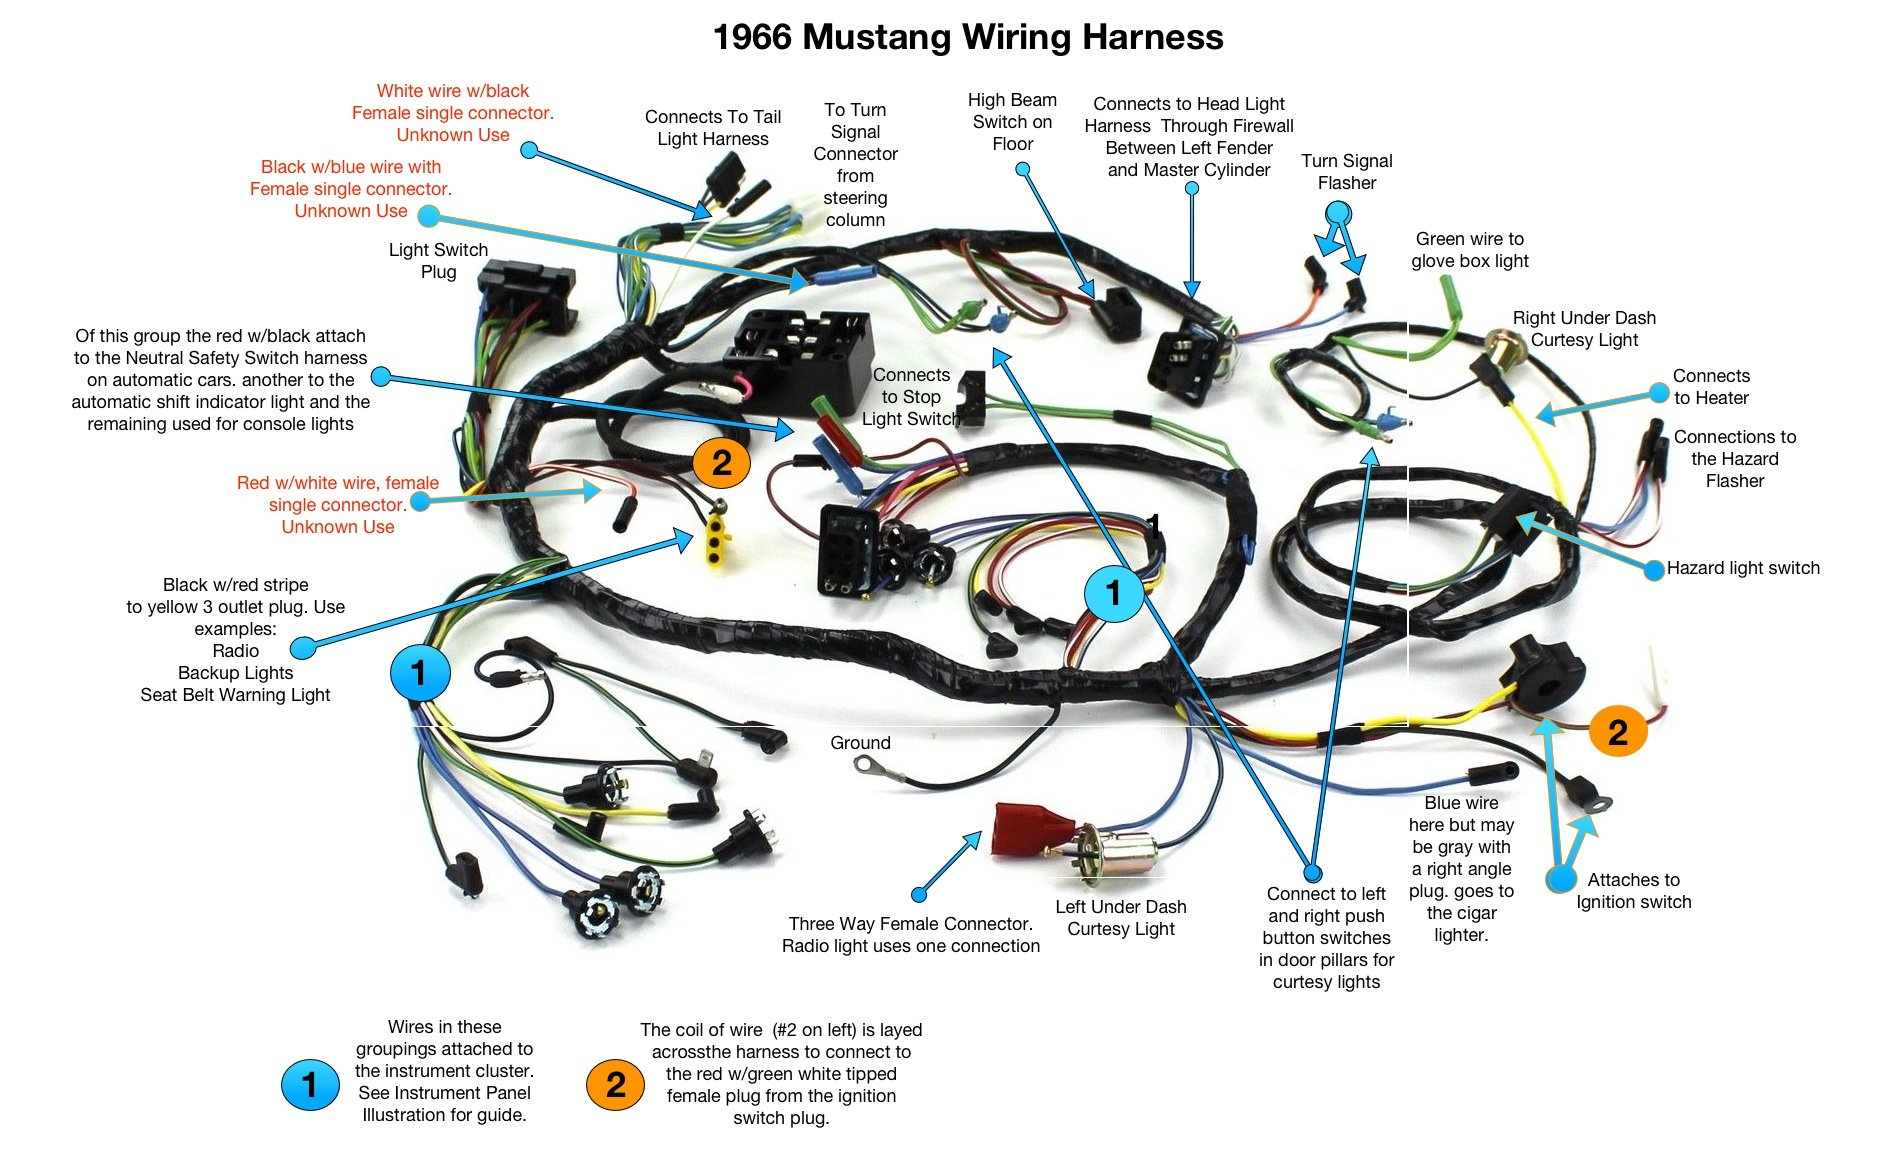 Wiring Harness Diagram Ford Mustang Will Be A Thing 1993 66 Forum Rh Allfordmustangs Com 91